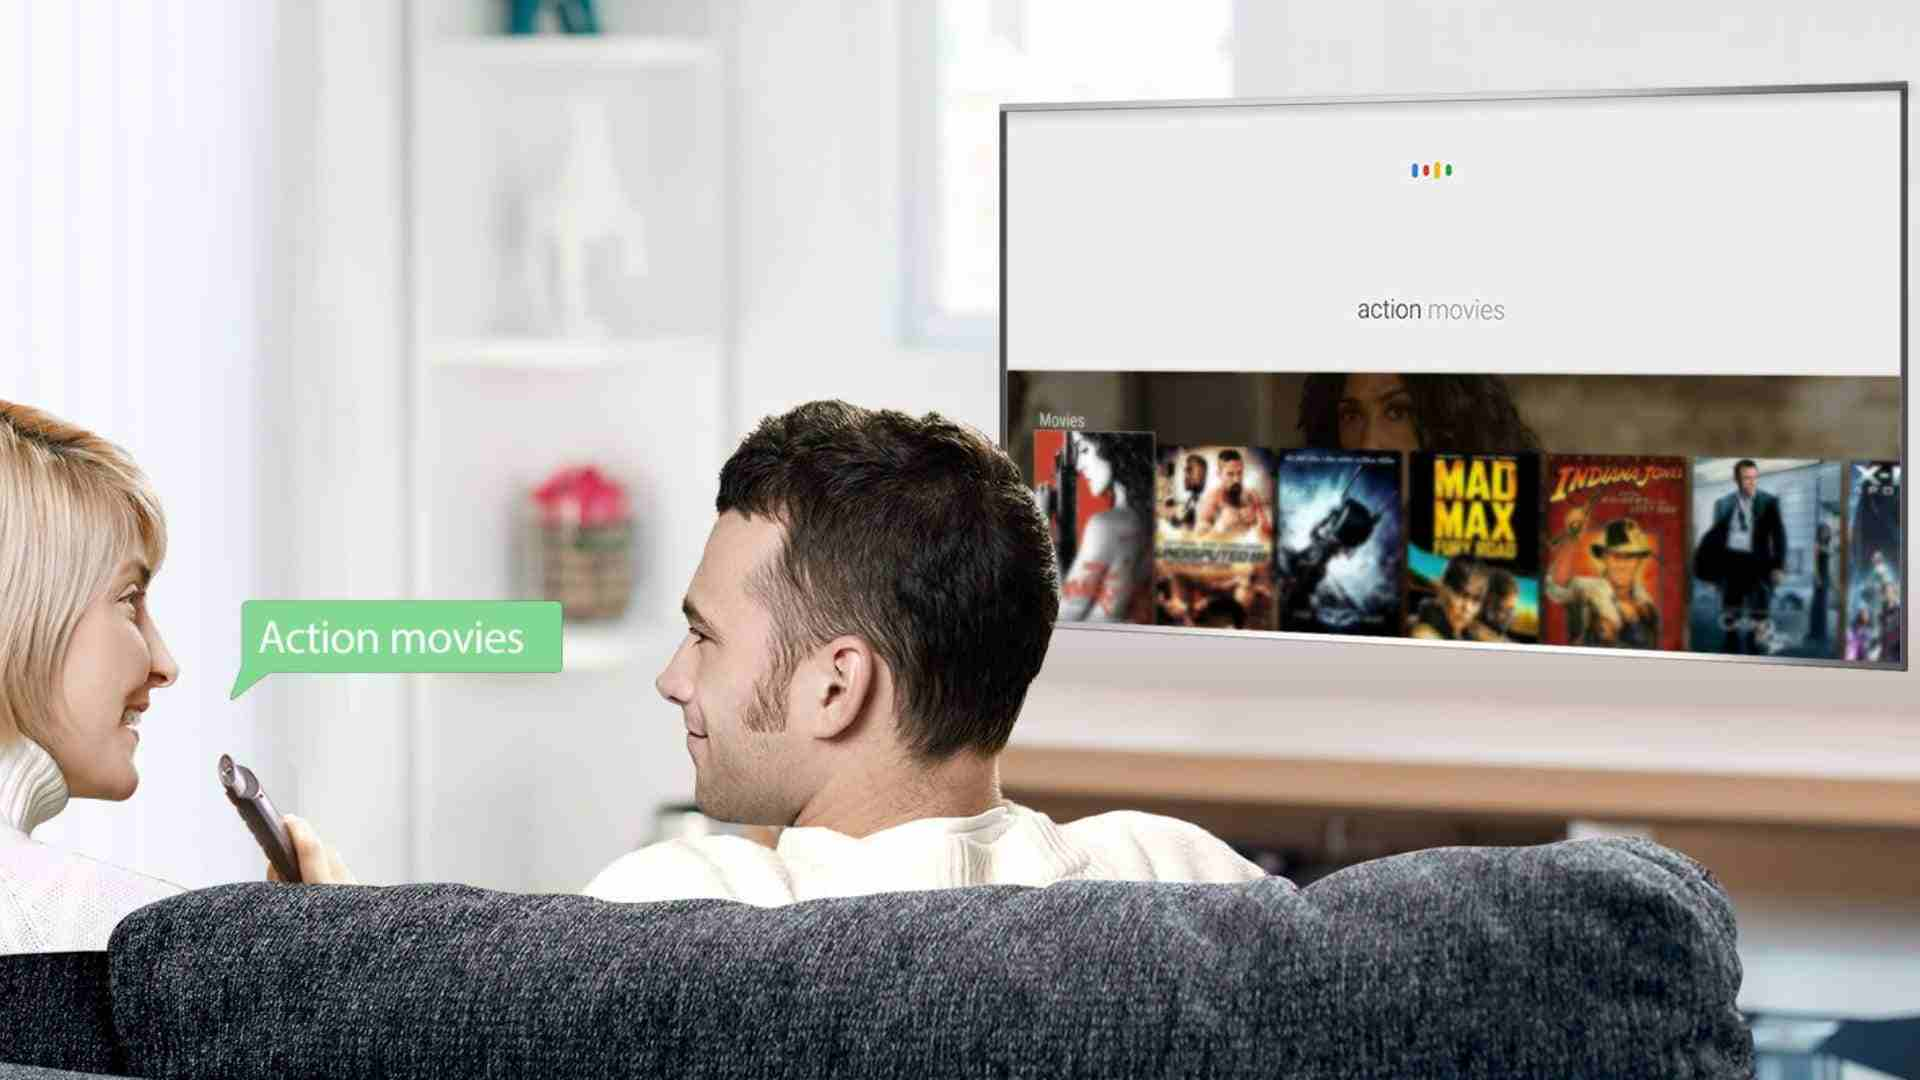 TCL Smart LED TV Voice Search